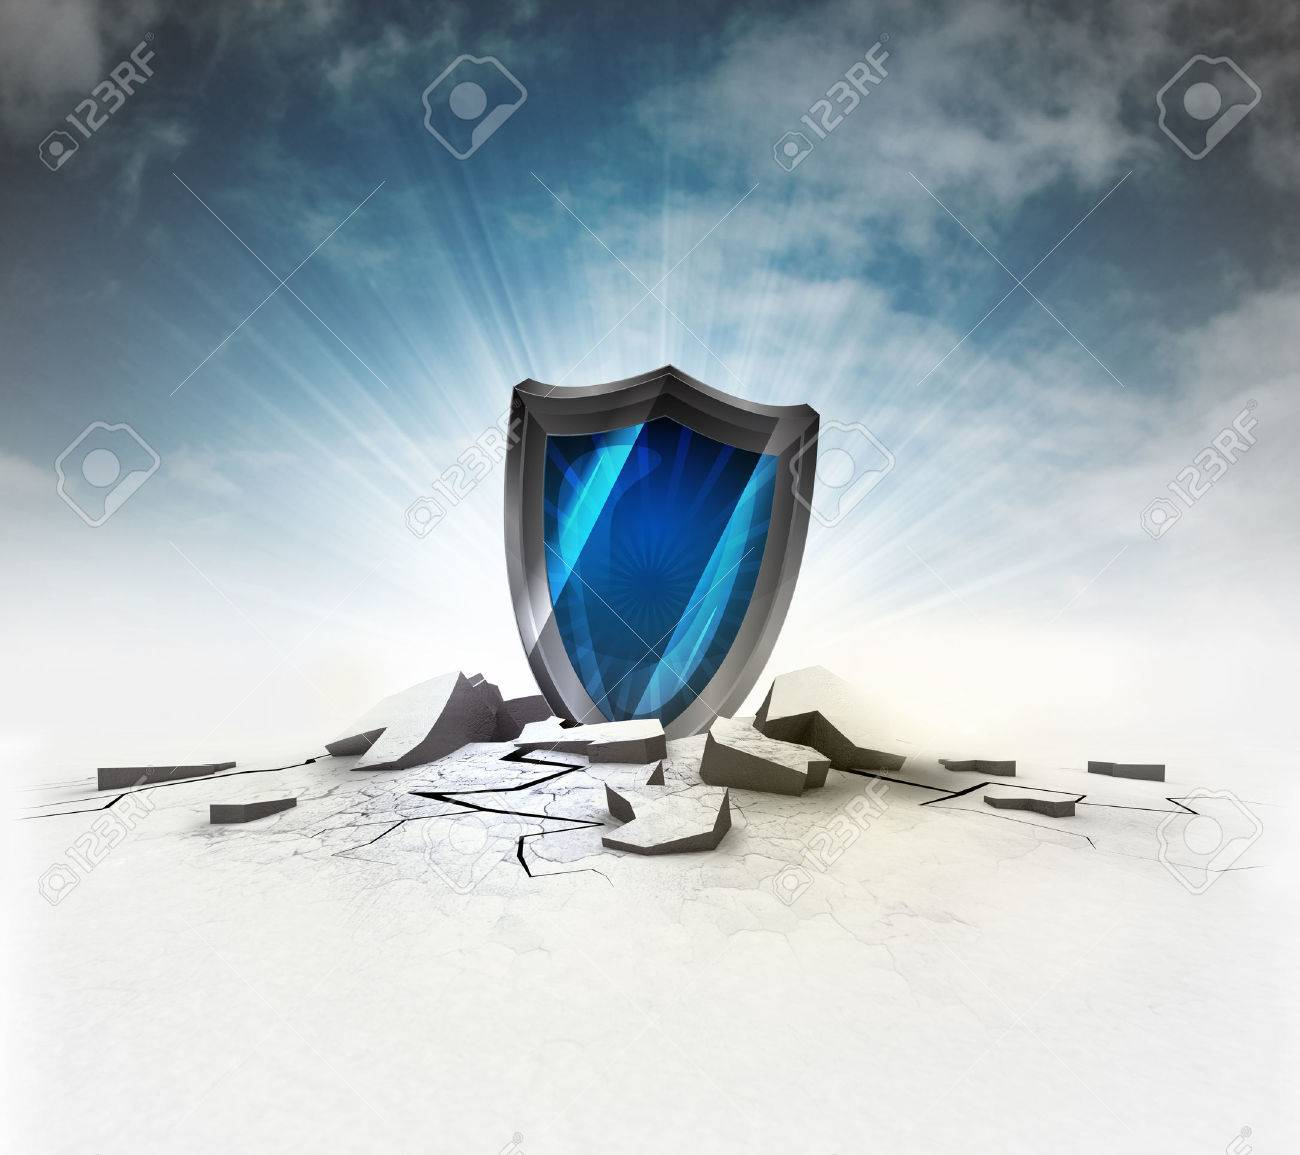 security shield stuck into ground with flare and sky illustration - 27953885